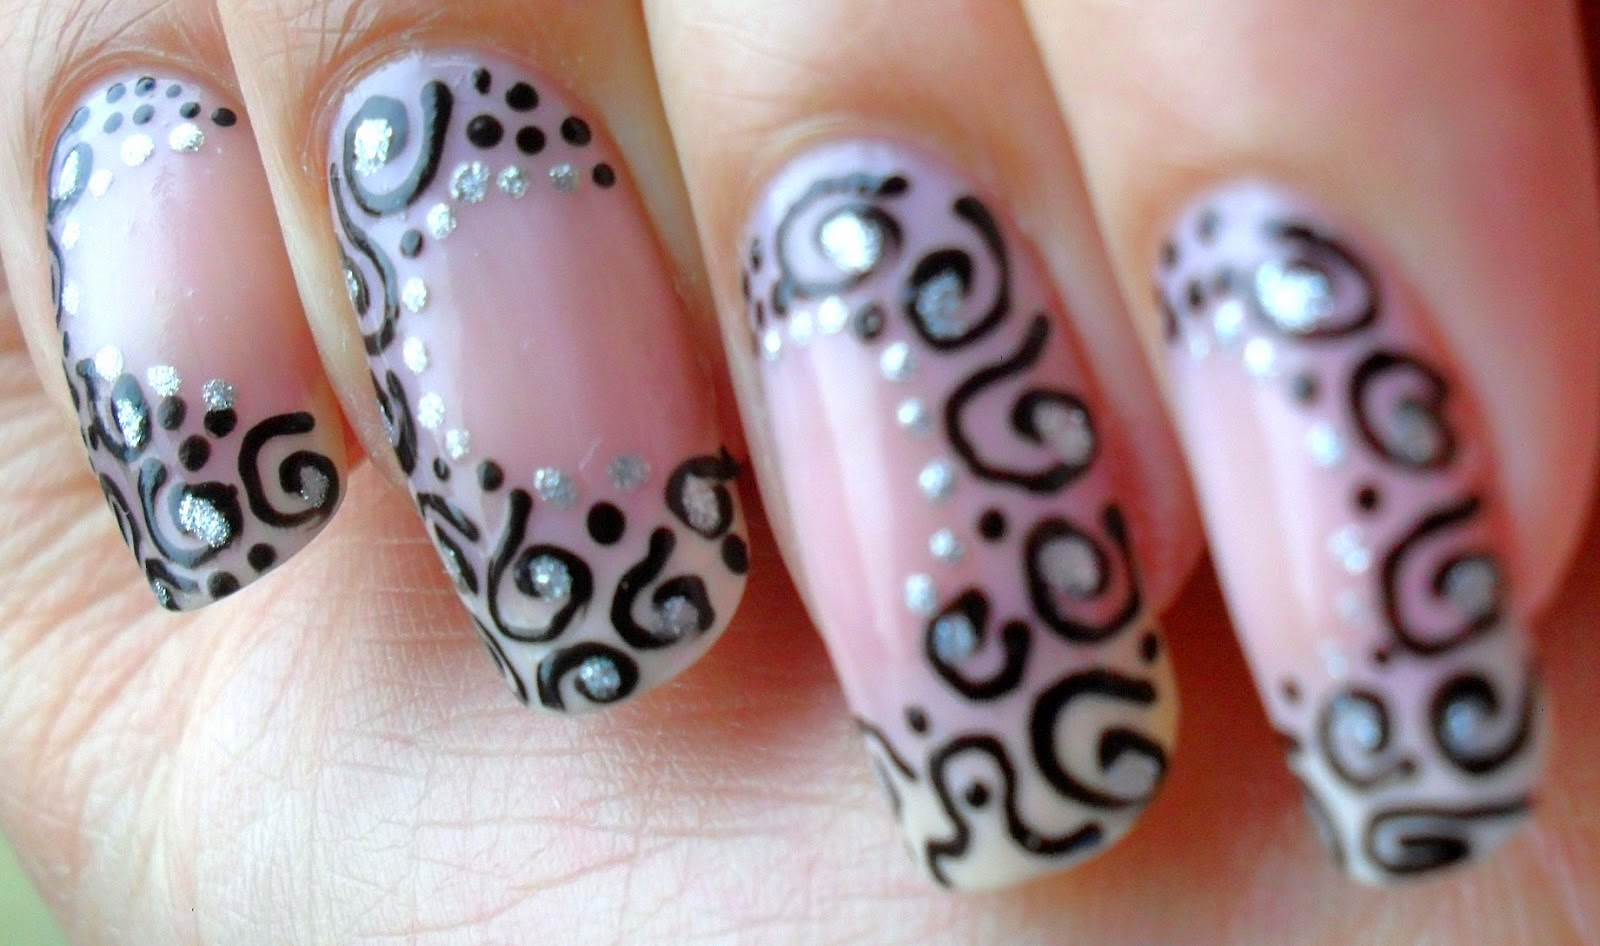 Nail art ideas for real nails   Nail Art and Tattoo Design Ideas for ...